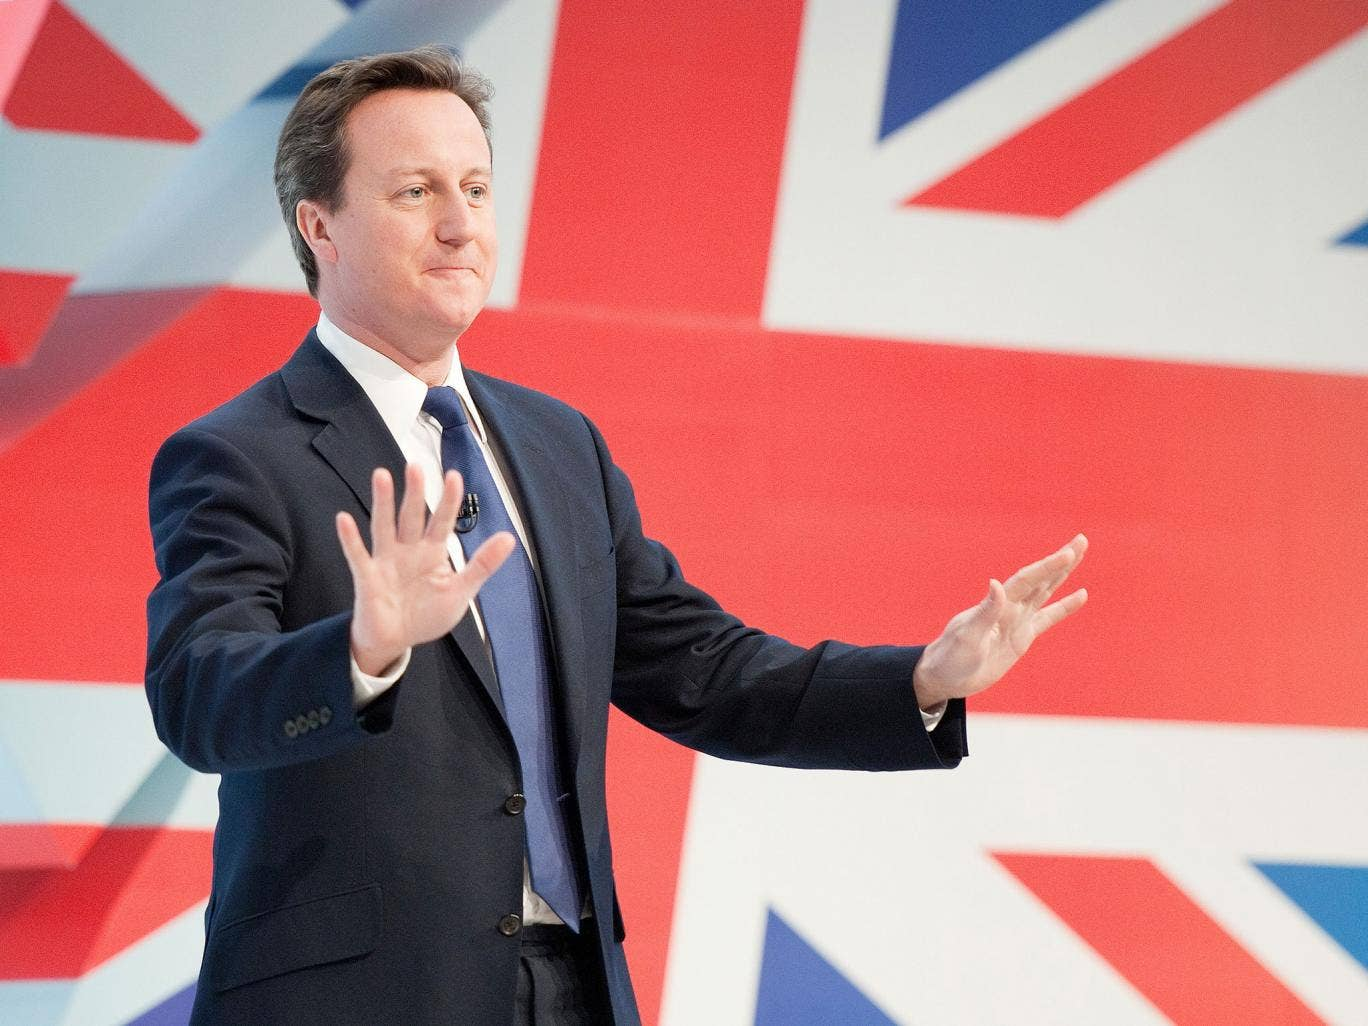 Tough talking: David Cameron is expected to give his speech tomorrow